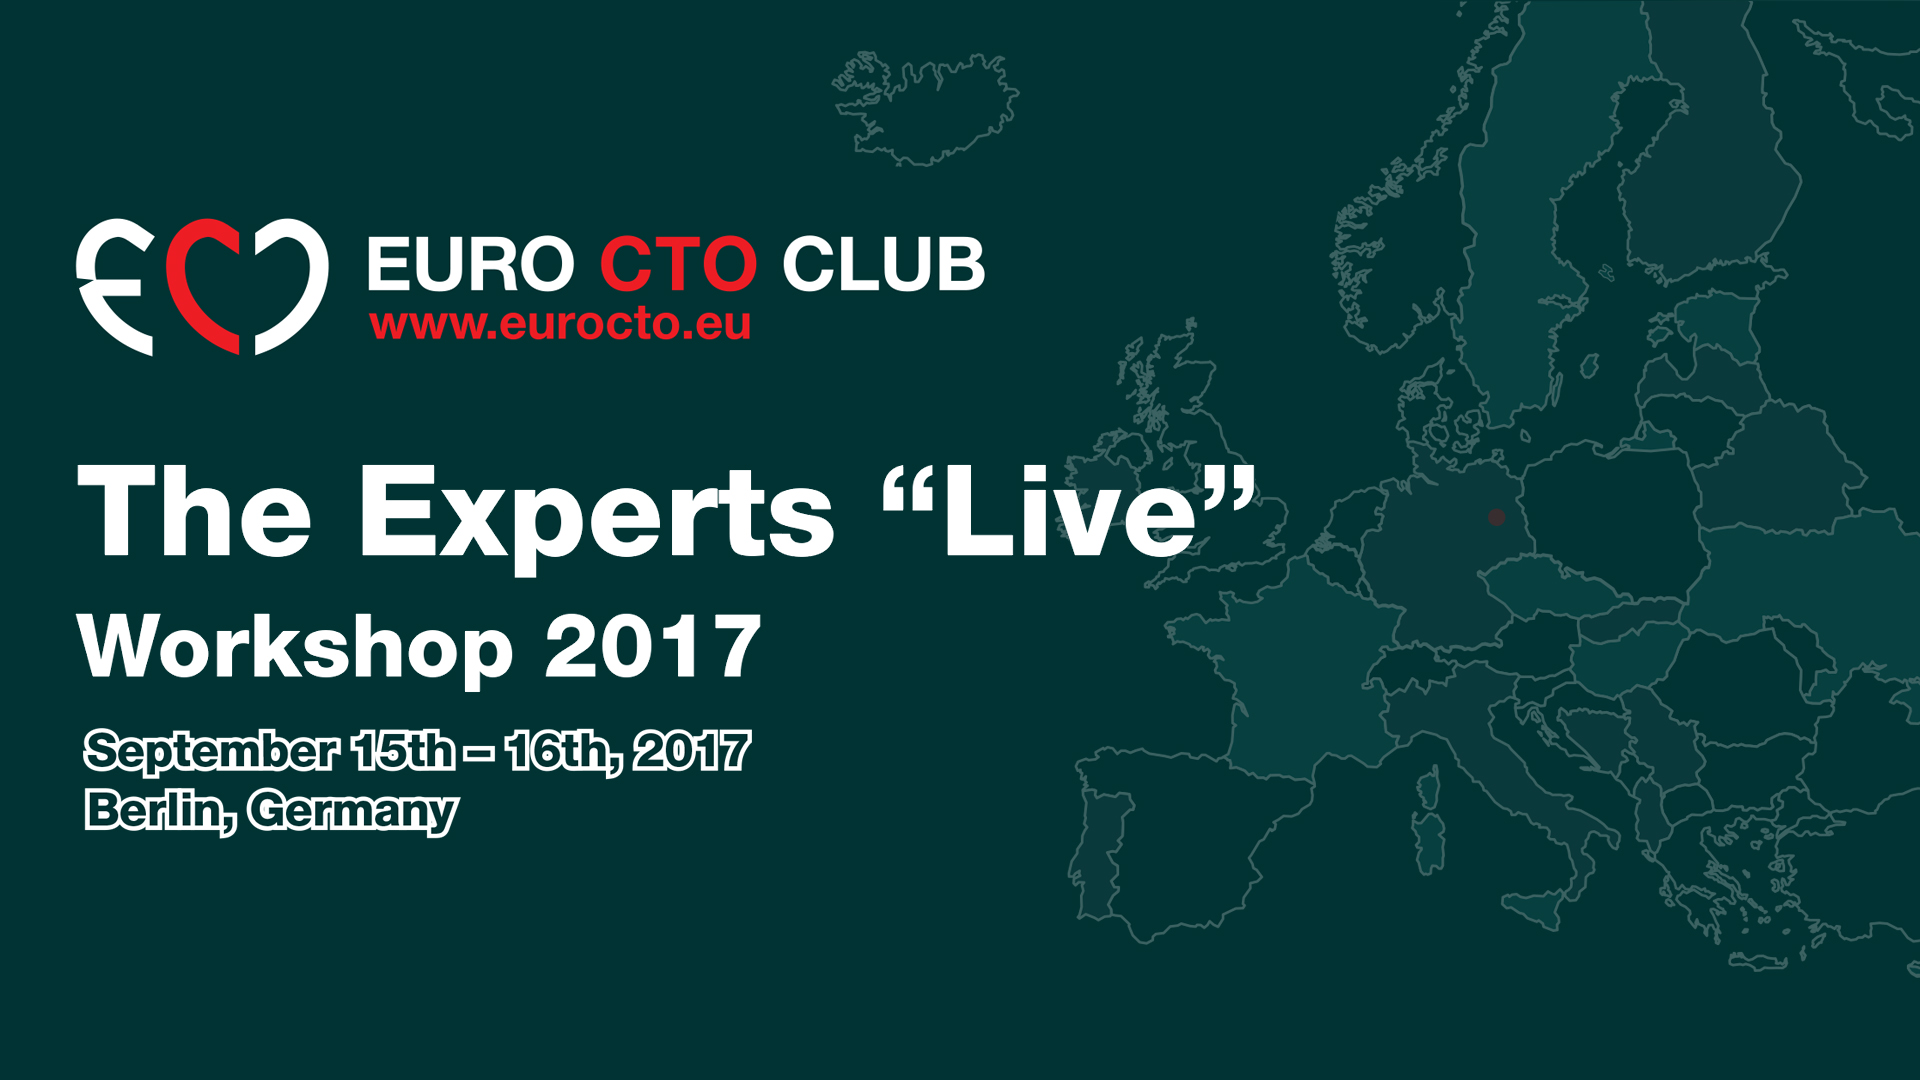 """The Experts """"Live"""" Workshop 2017 - Euro CTO Club"""